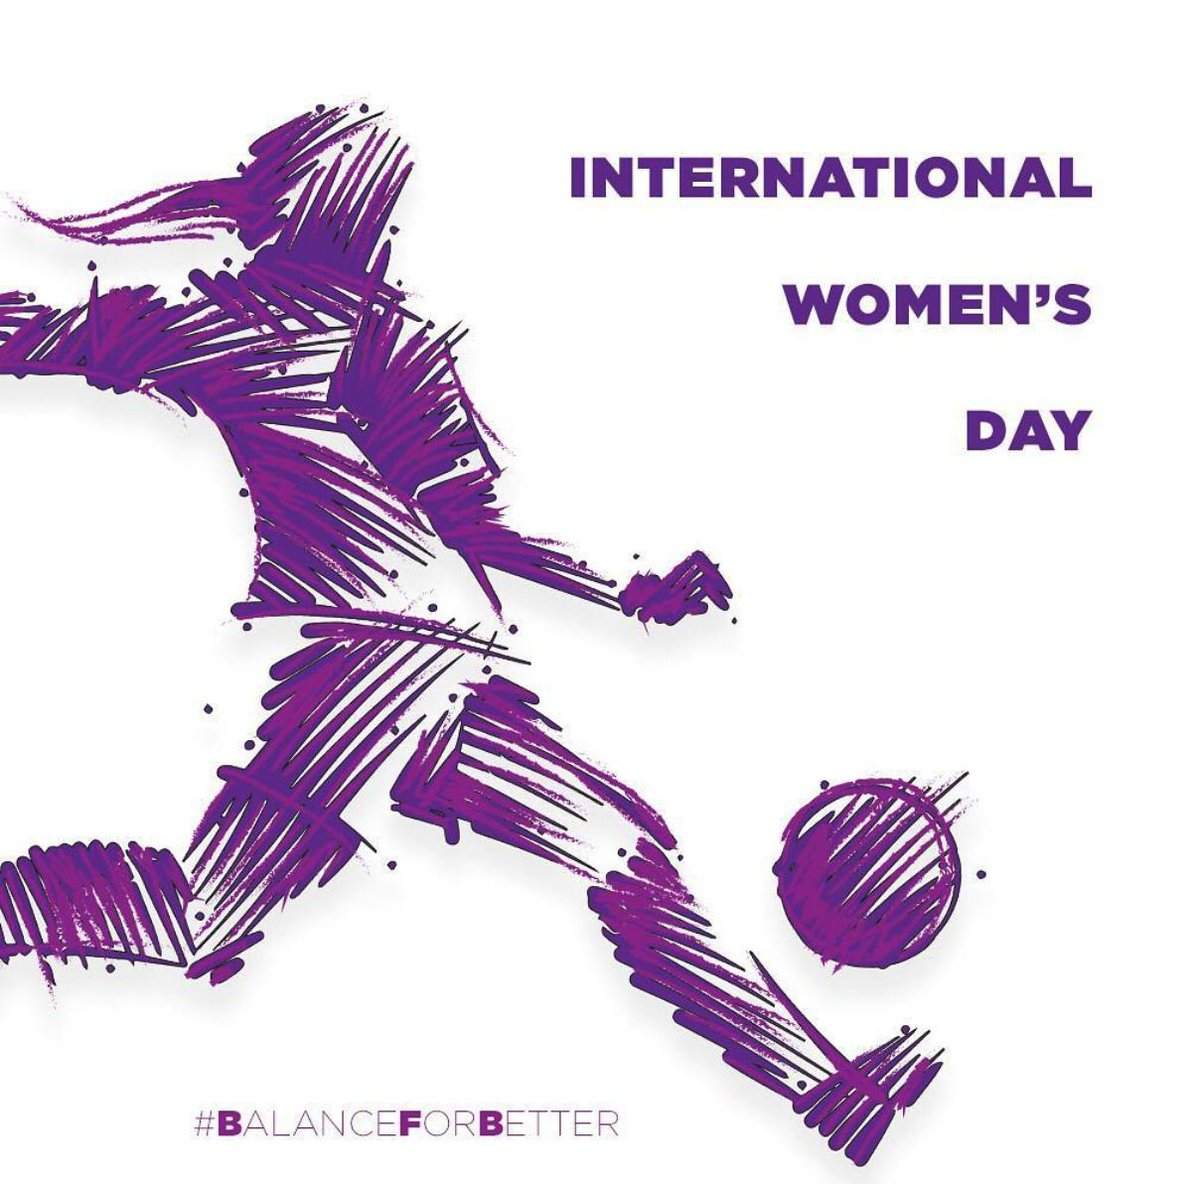 """""""Celebrating diverse imagery of women challenges stereotypes, broadens perceptions and reflects the vibrant and varied communities in which we live and work worldwide."""" - Glenda Slingsby, Partnerships Director for International Women's Day  #BalanceforBetter #IWD2019"""